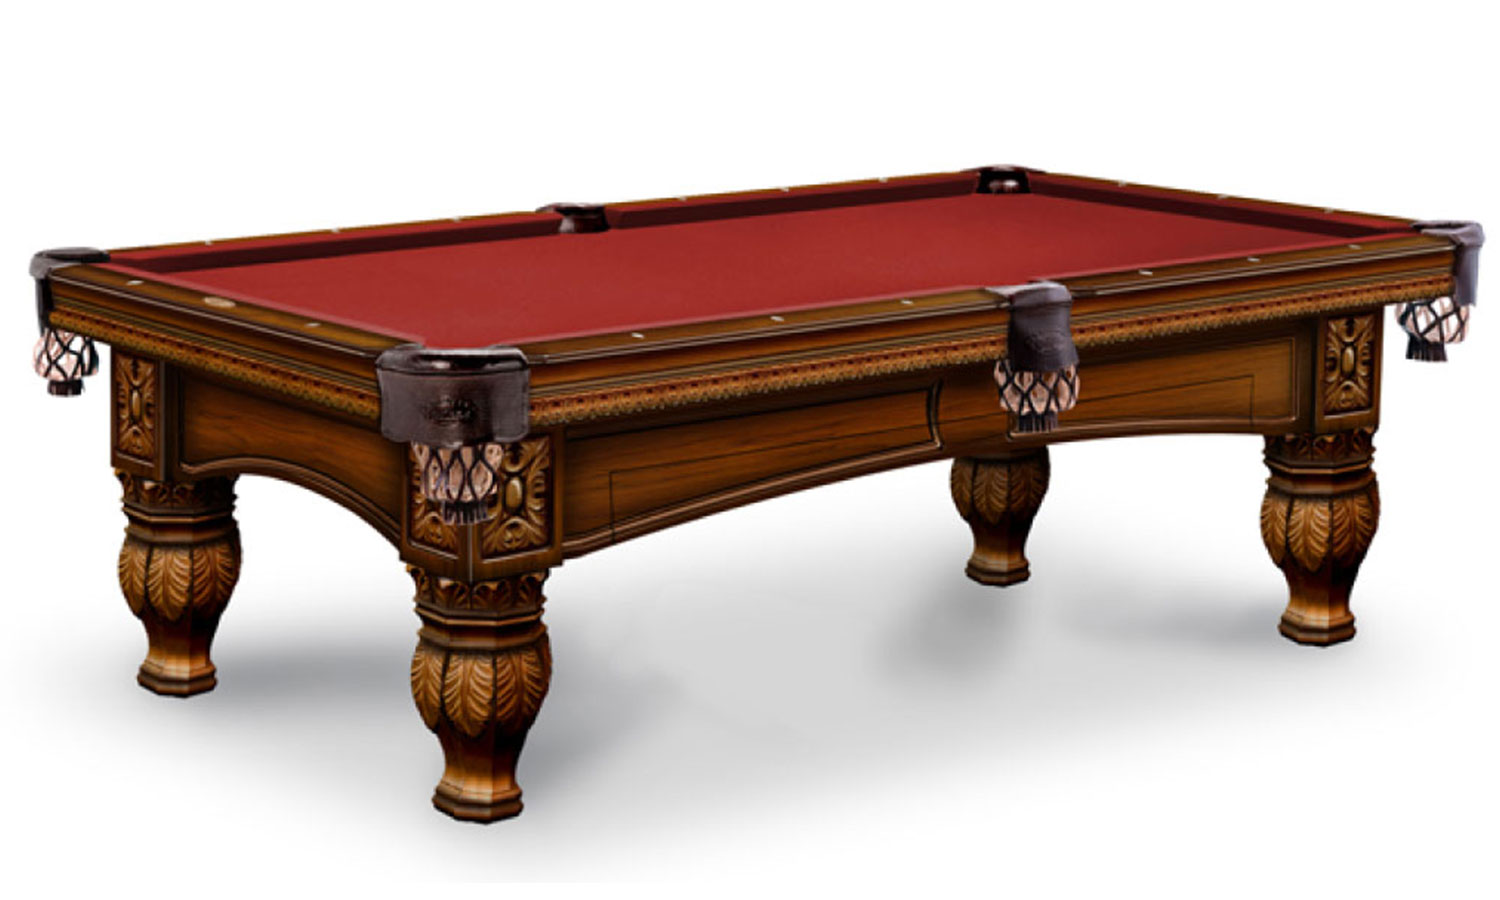 Used Olhausen Pool Tables For Sale Olhausen Venetian 4-Leg Pool Table-Shop Olhausen Pool Tables